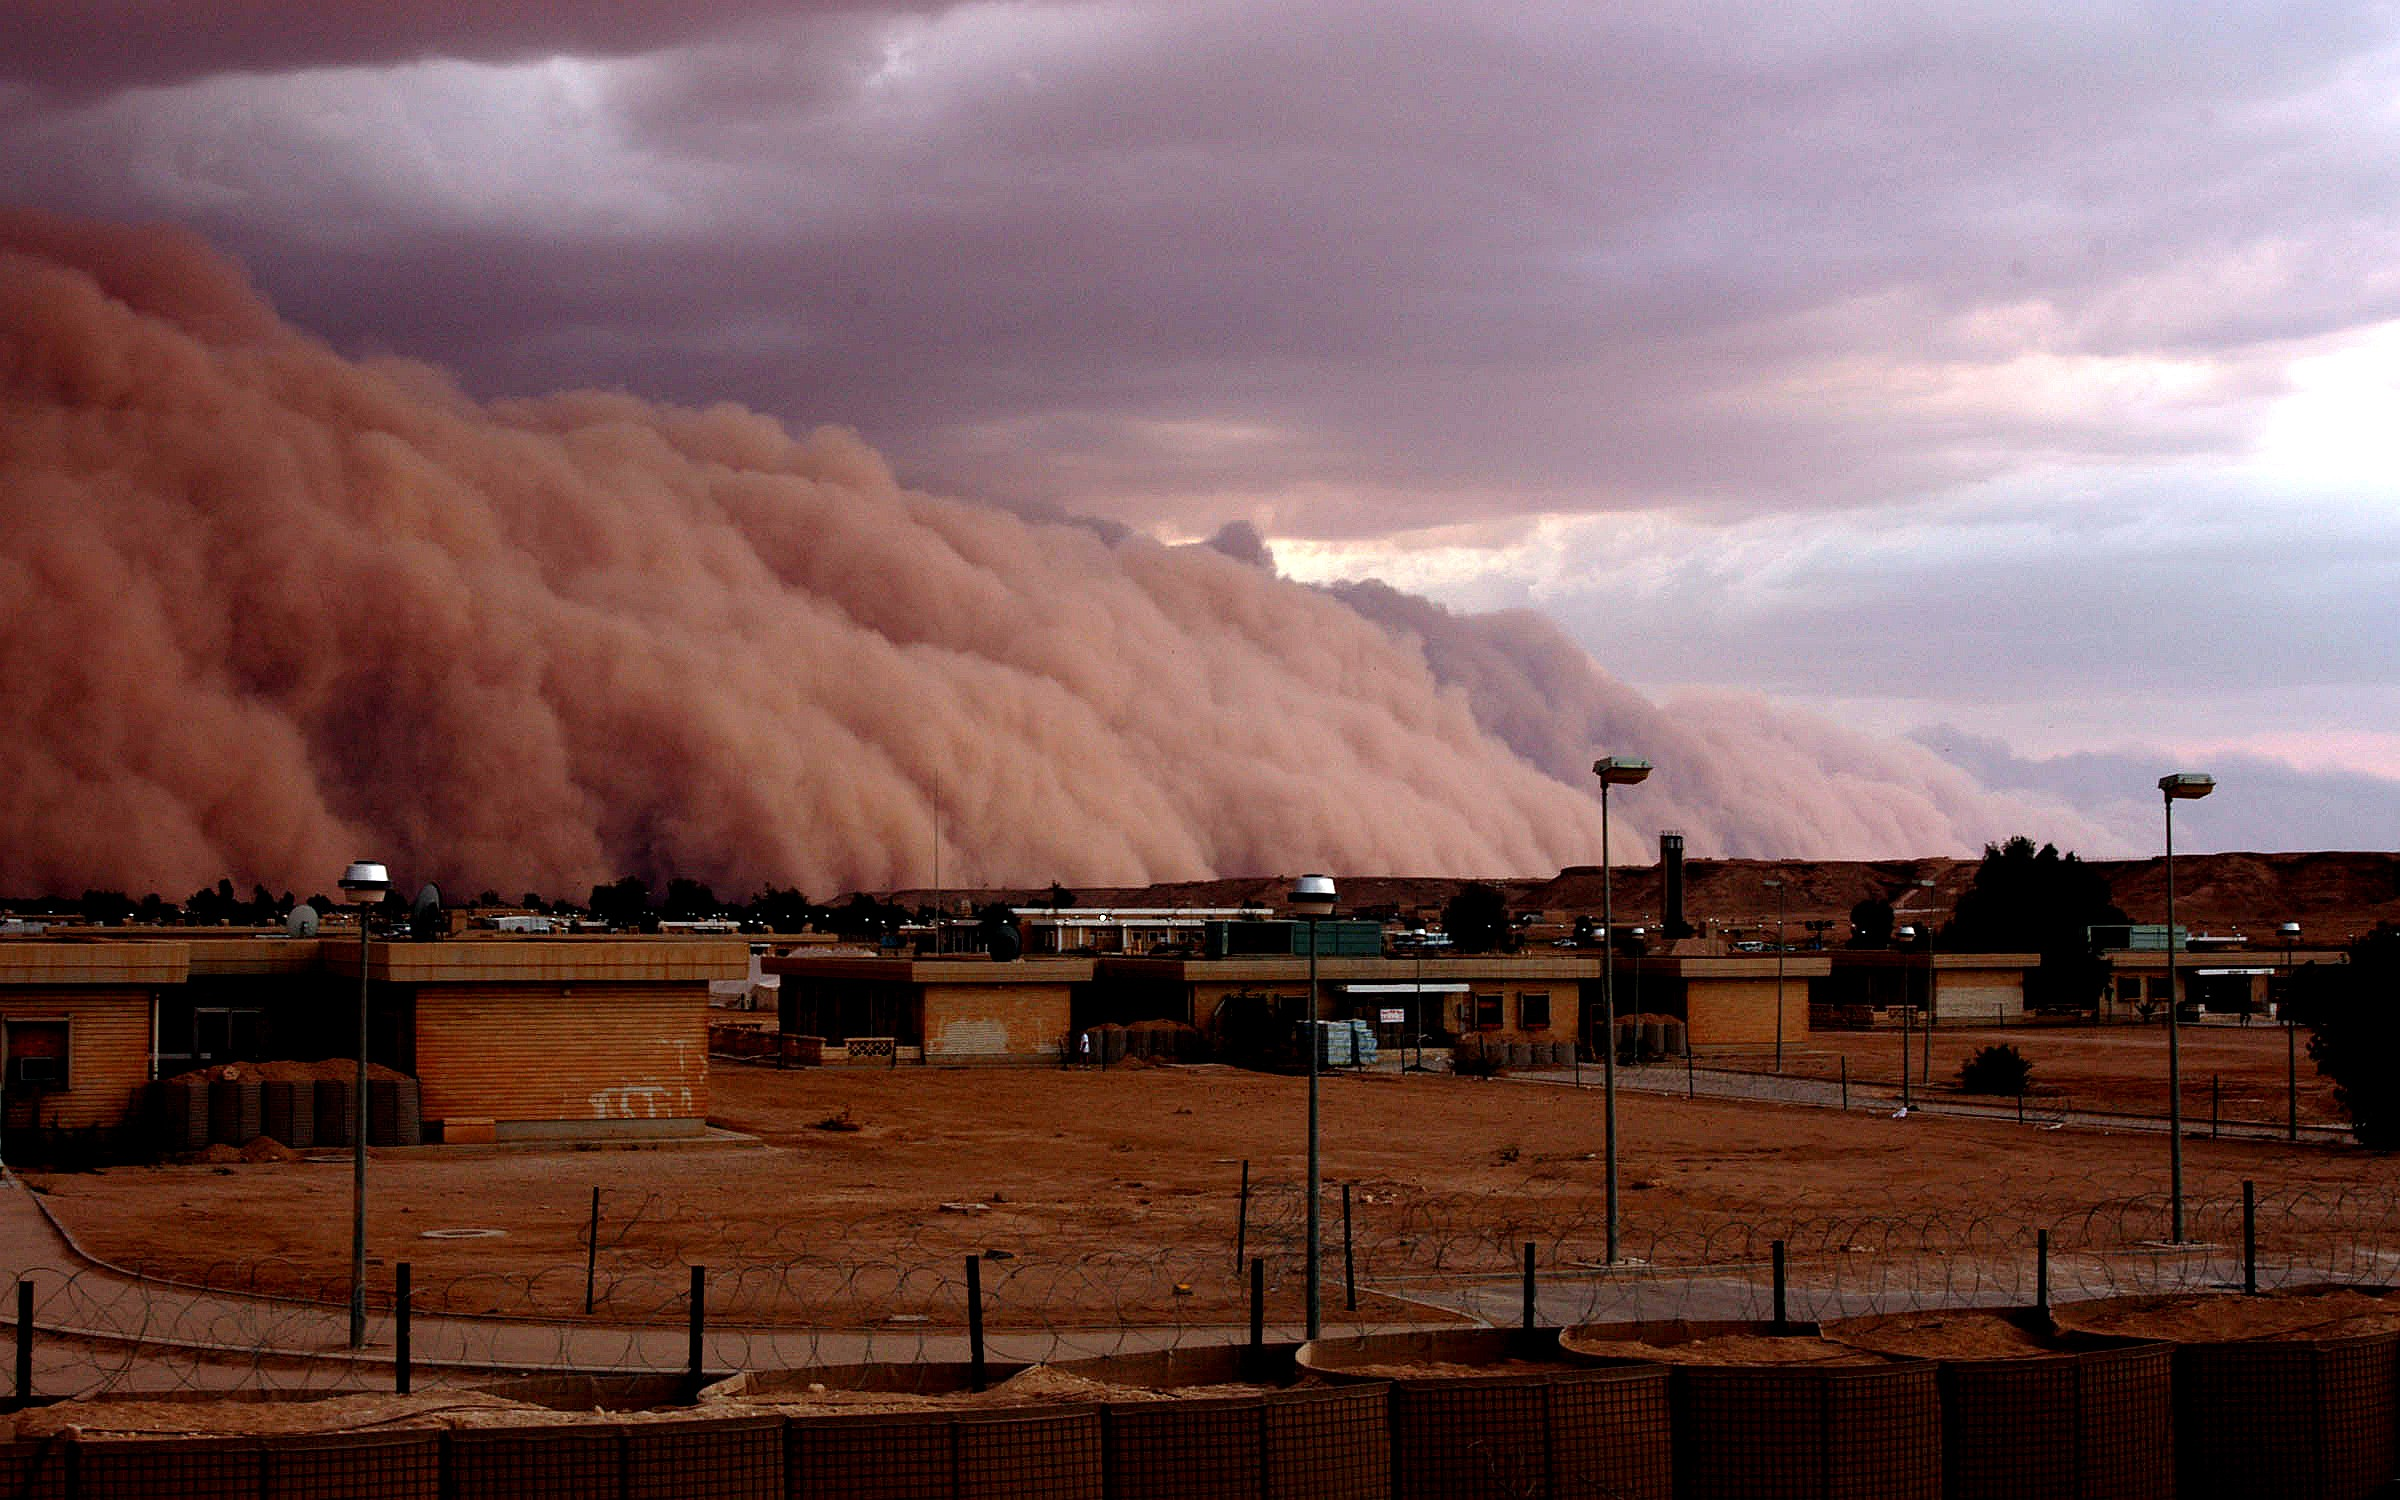 nature strikes back sand storm over iraq